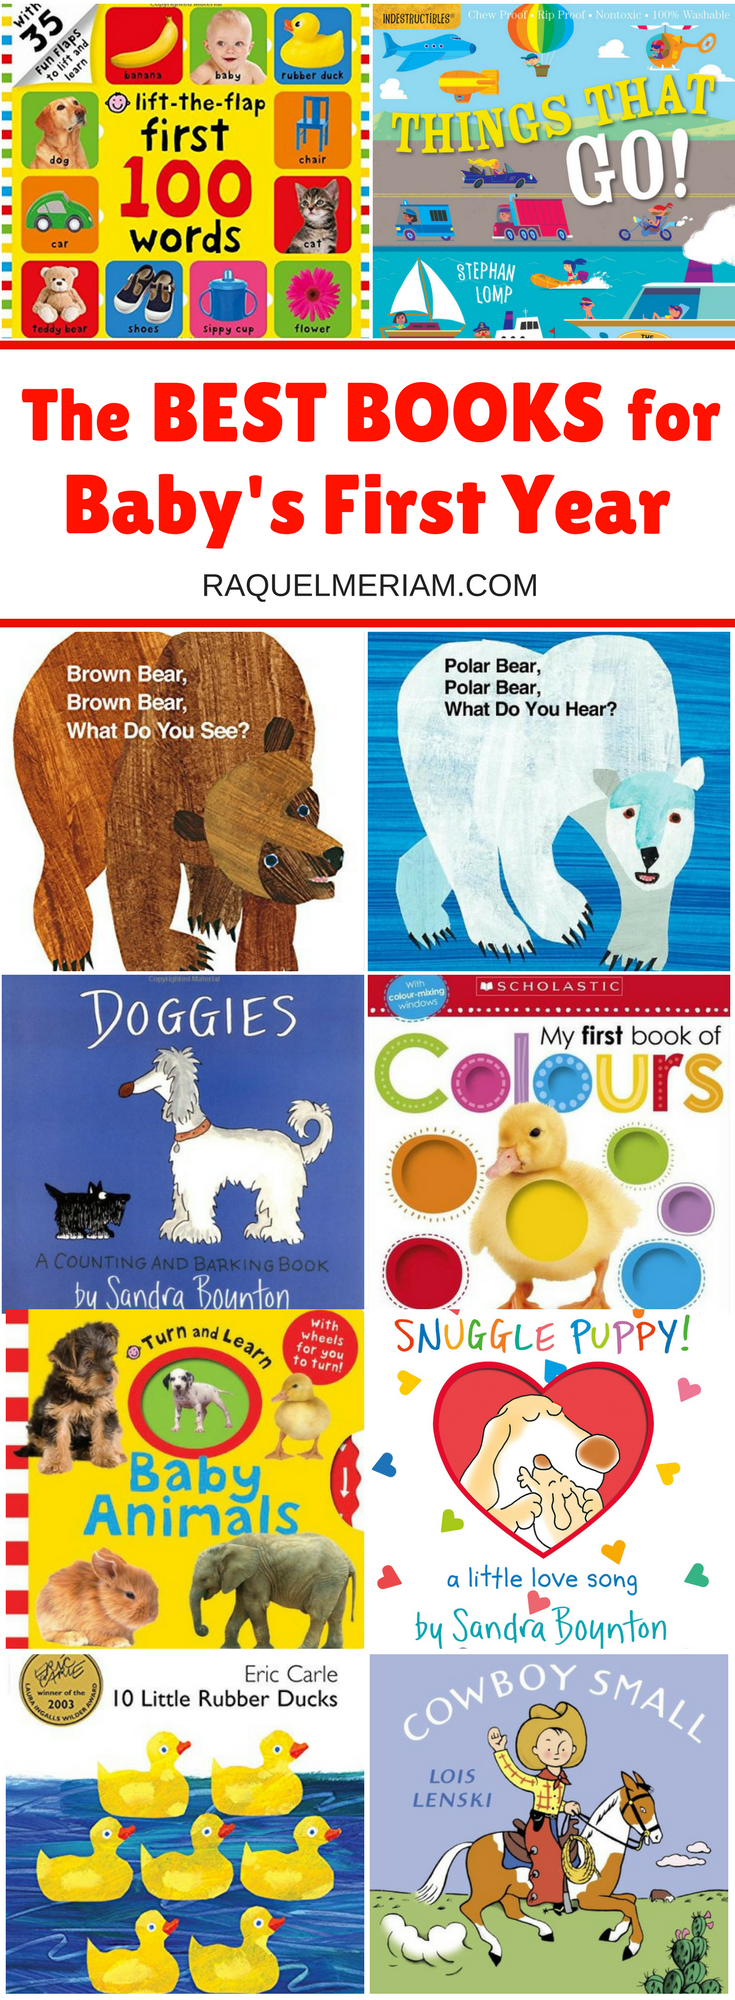 This is a list of my favourite books that I read to both my daughters as newborns and up to 1 years old.